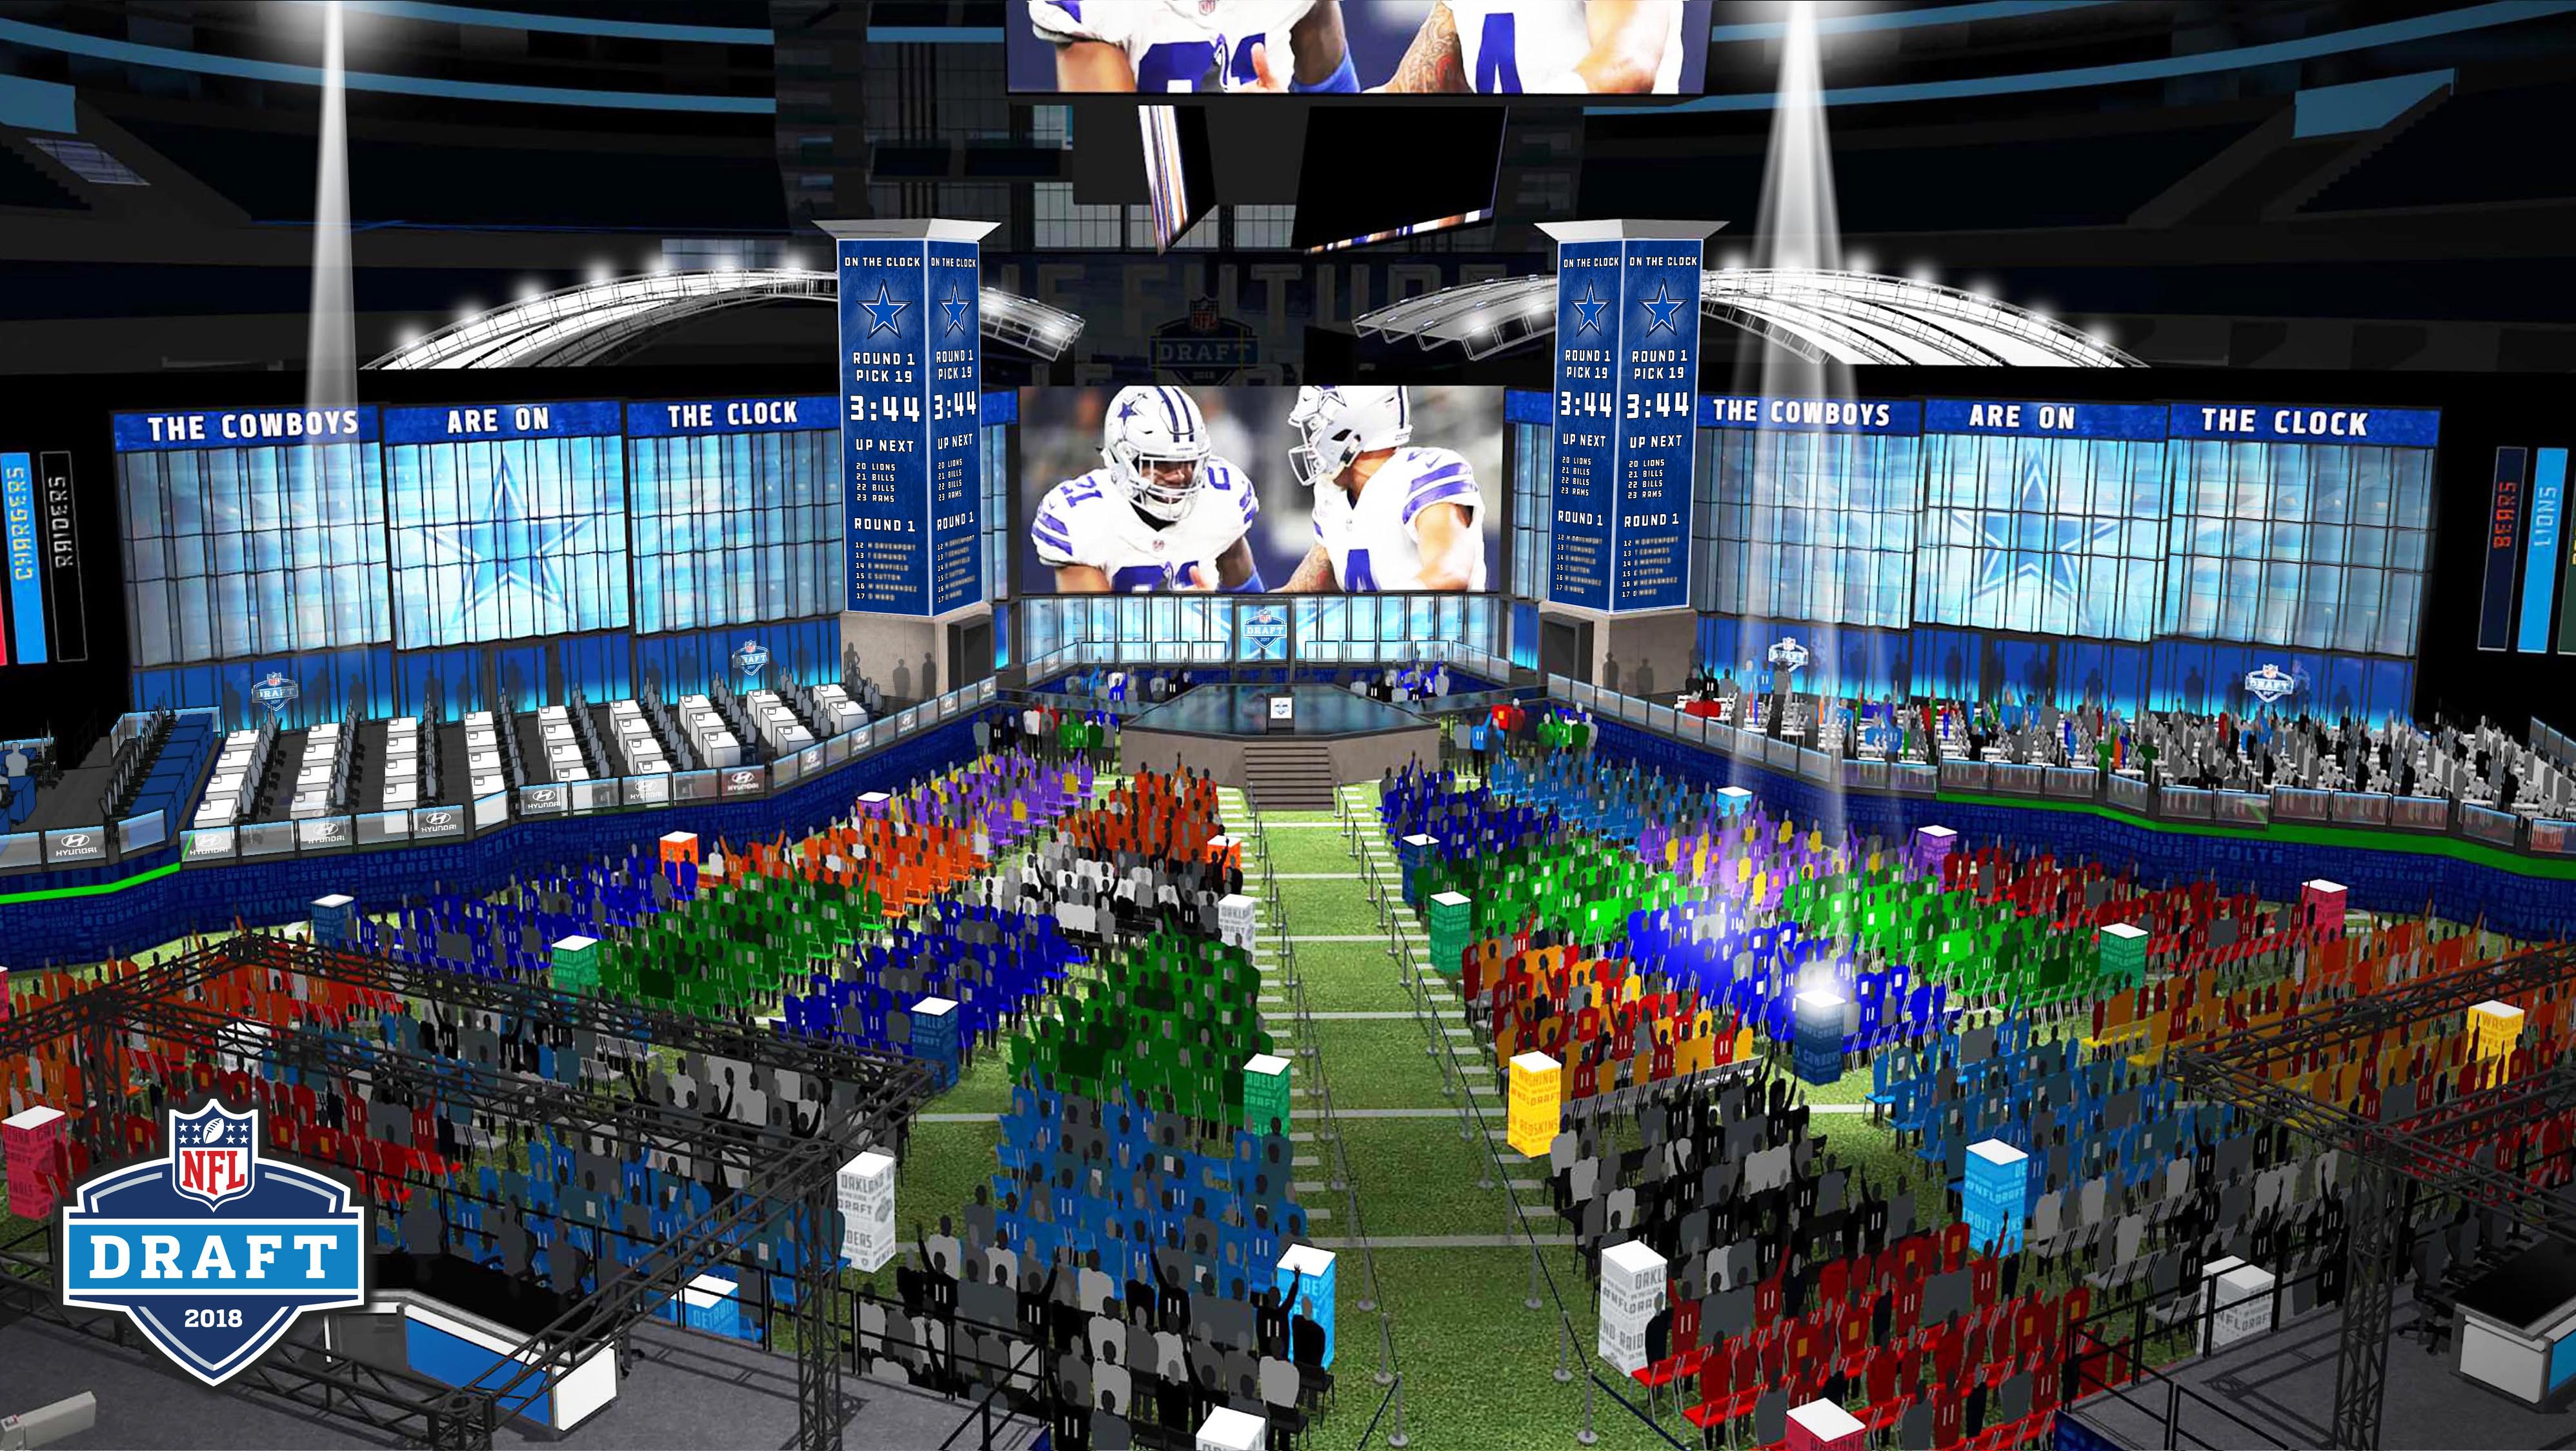 Dallas Cowboys  Drew Pearson as Cowboys reveal setup for NFL draft at AT T  Stadium   I pity the team that has to follow   230e4d0d1cf